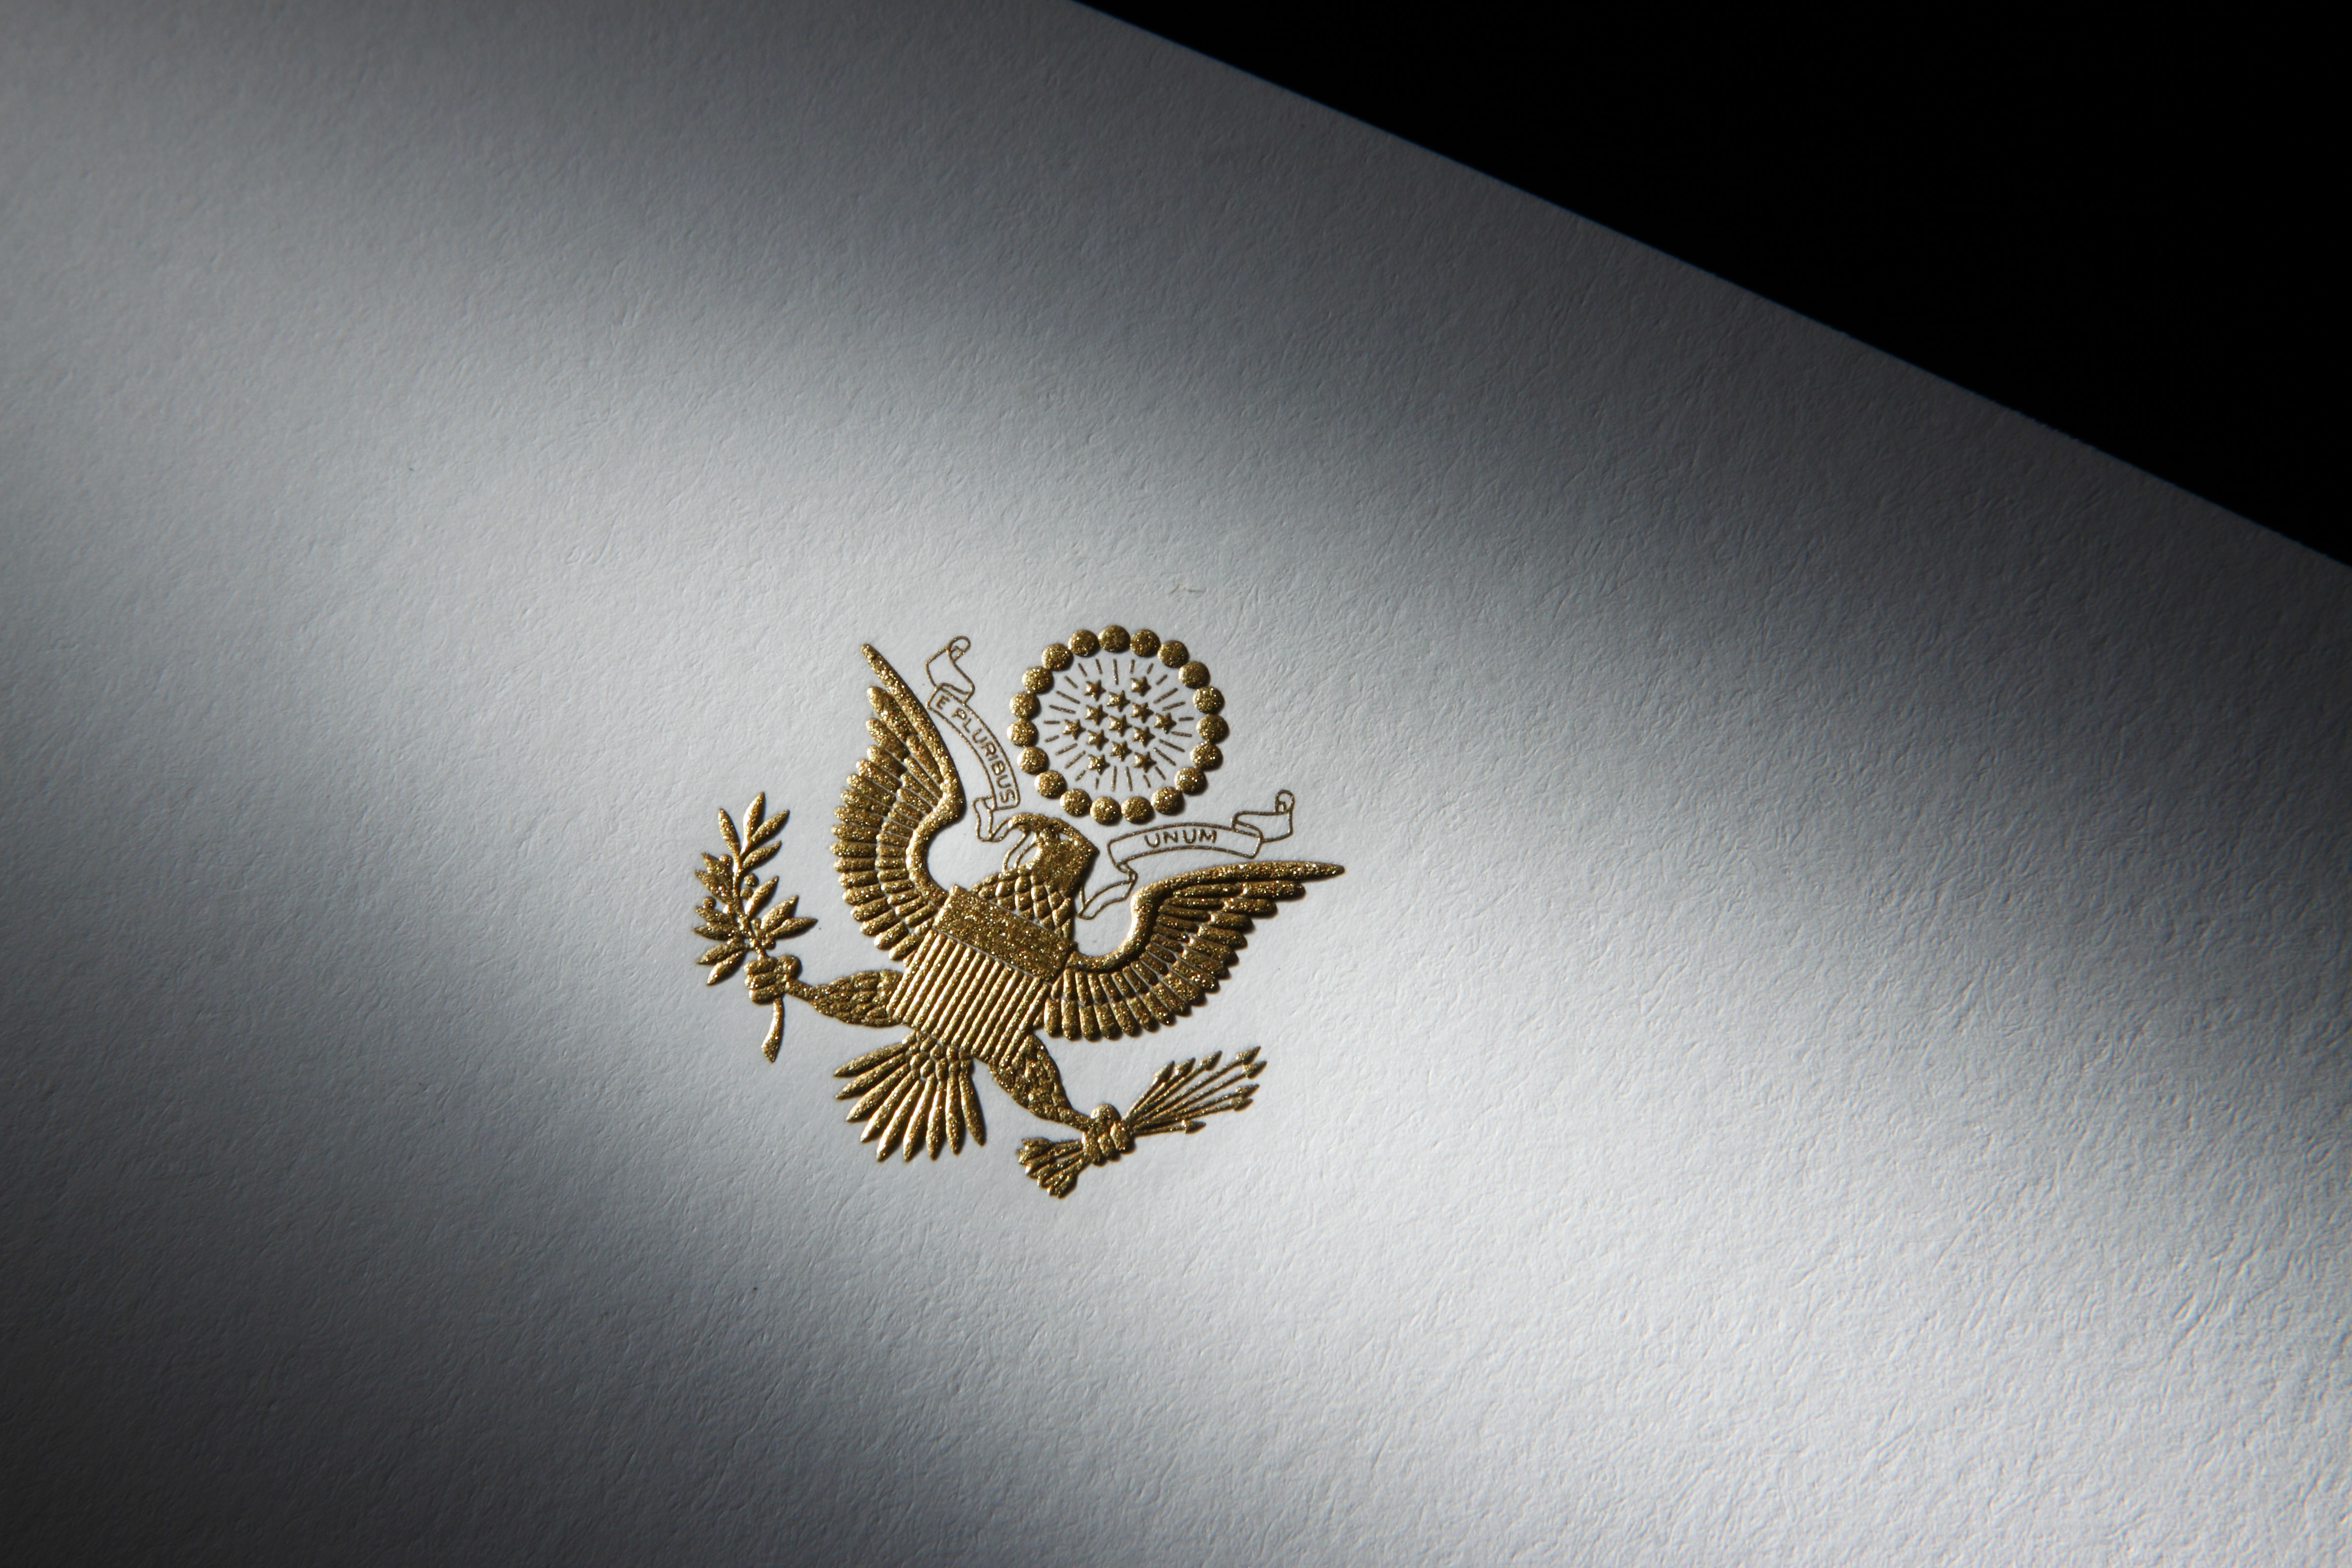 picture of gold engraving, true mettalic